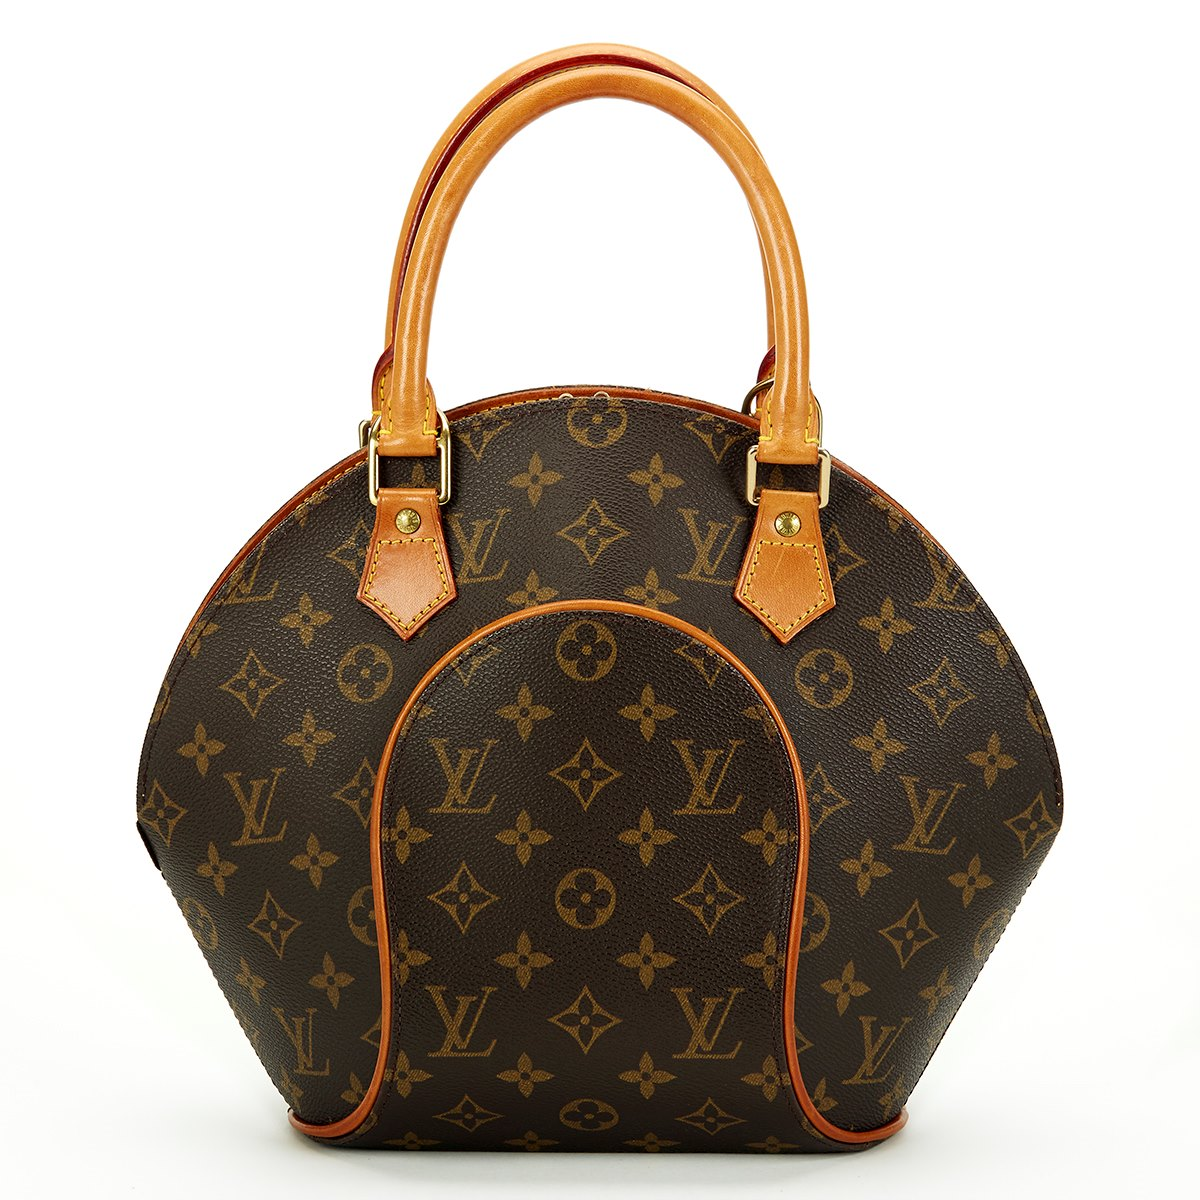 louis vuitton ellipse pm 1998 hb335 second hand handbags xupes. Black Bedroom Furniture Sets. Home Design Ideas